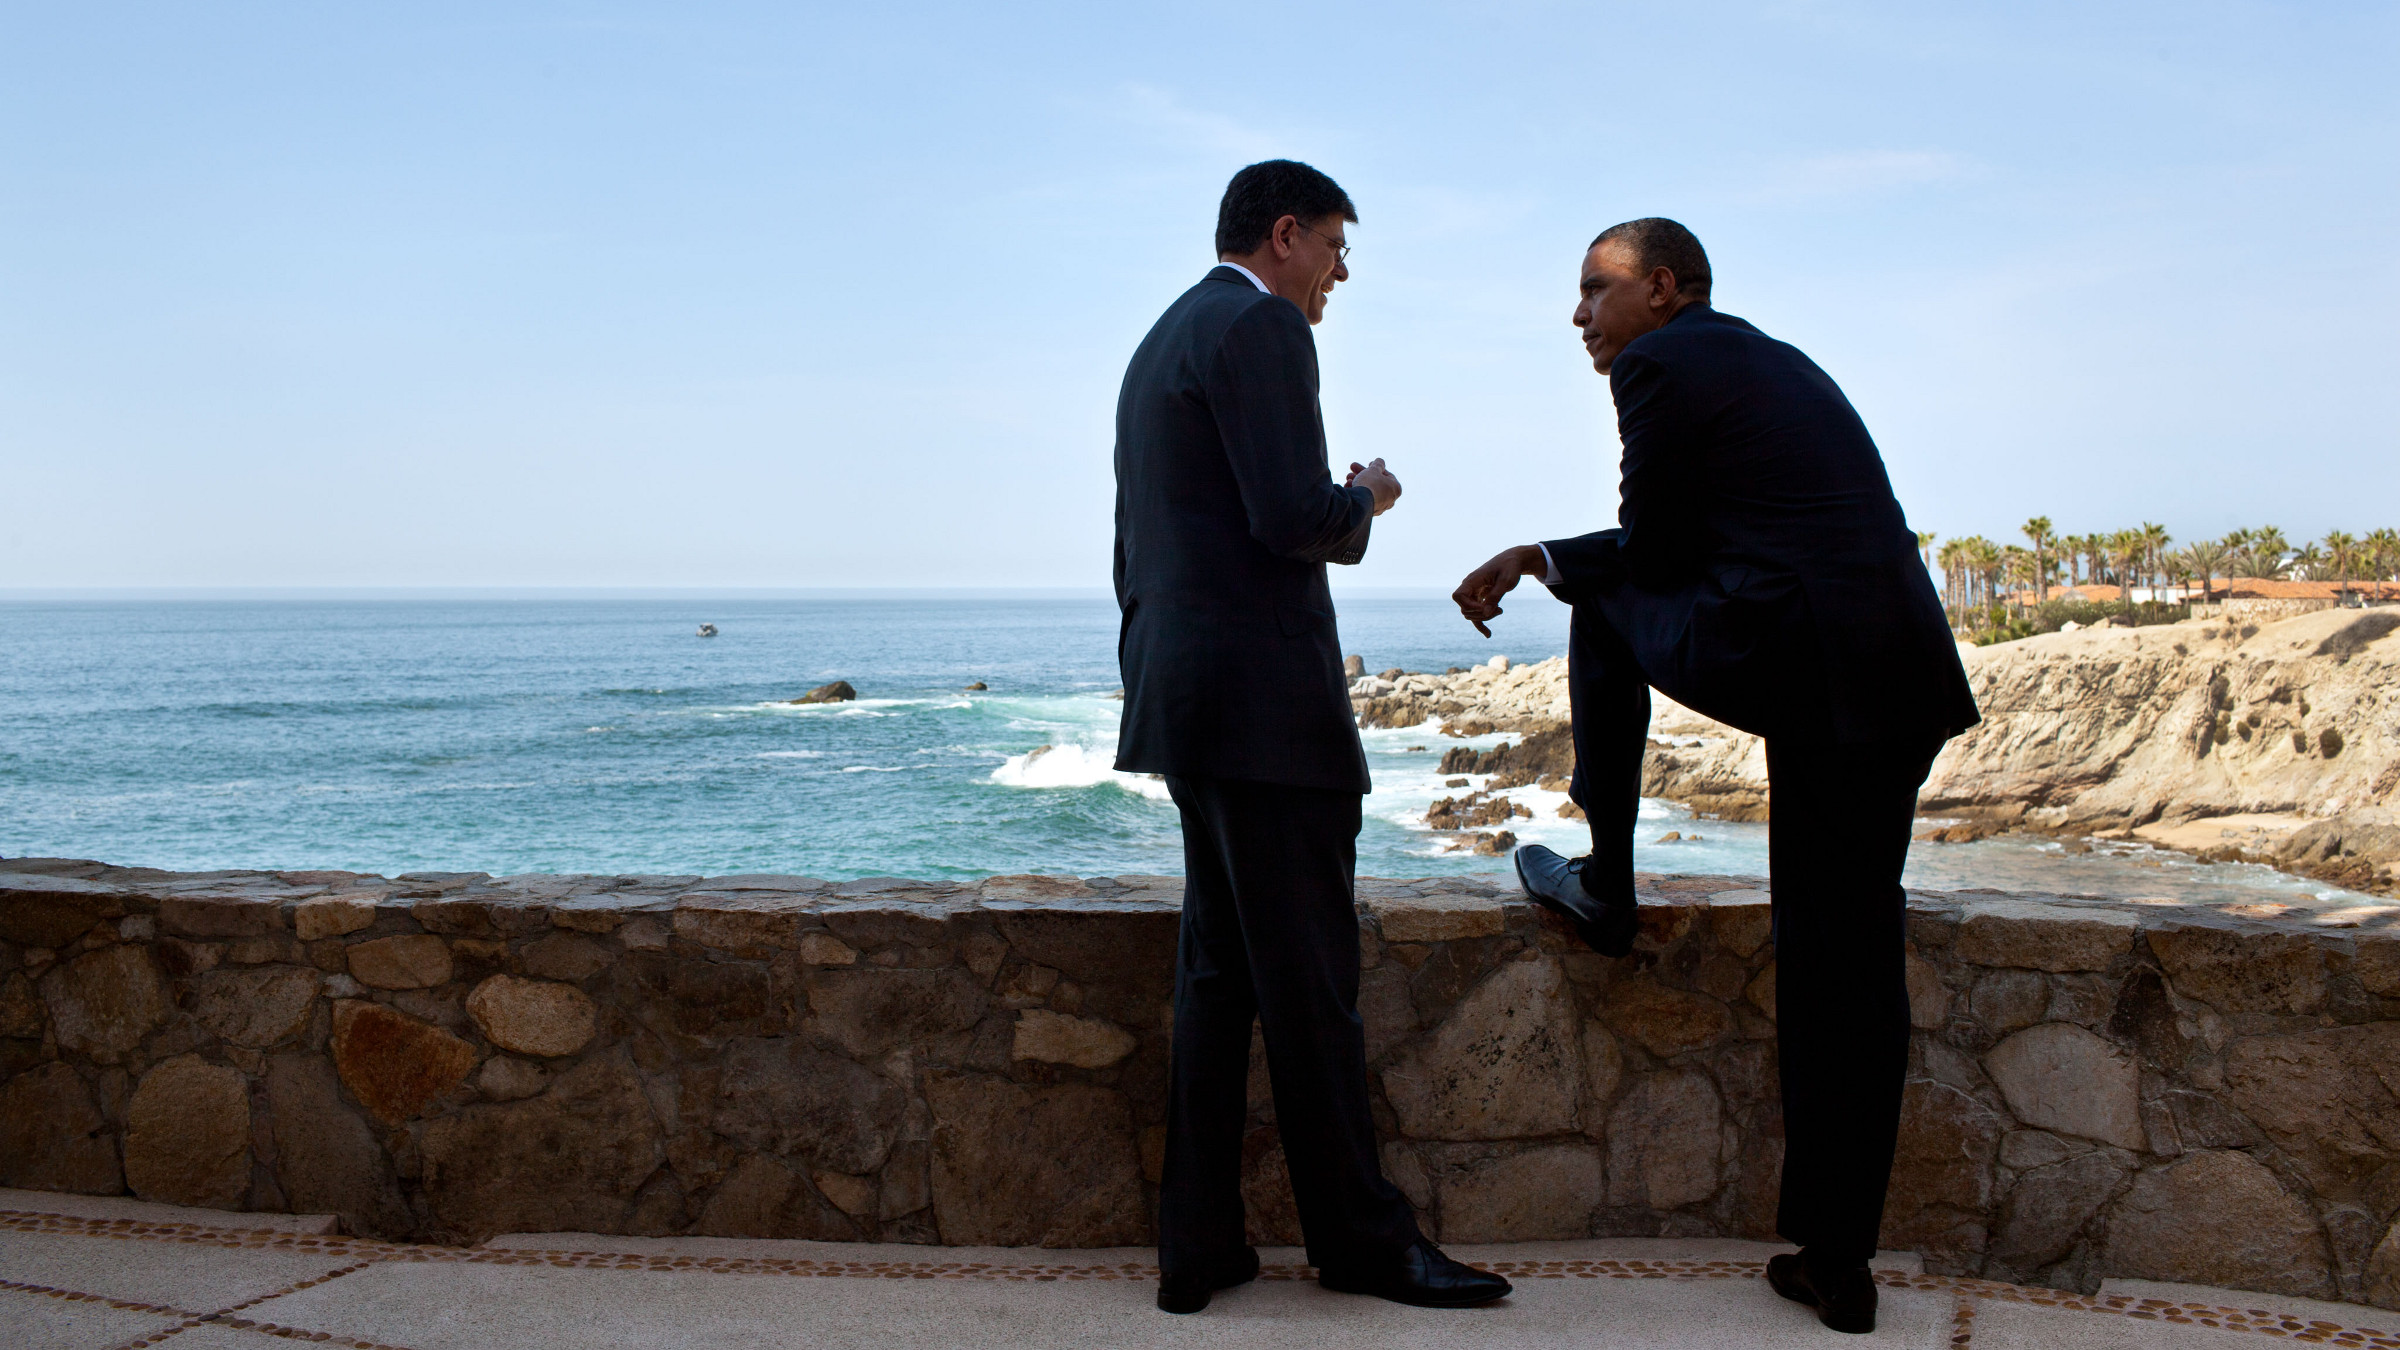 President Barack Obama talks with Chief of Staff Jack Lew at the Esperanza Resort in San Jose Del Cabo, Mexico, in advance of a bilateral meeting with President Vladimir Putin of Russia, June 18, 2012. (Official White House Photo by Pete Souza)